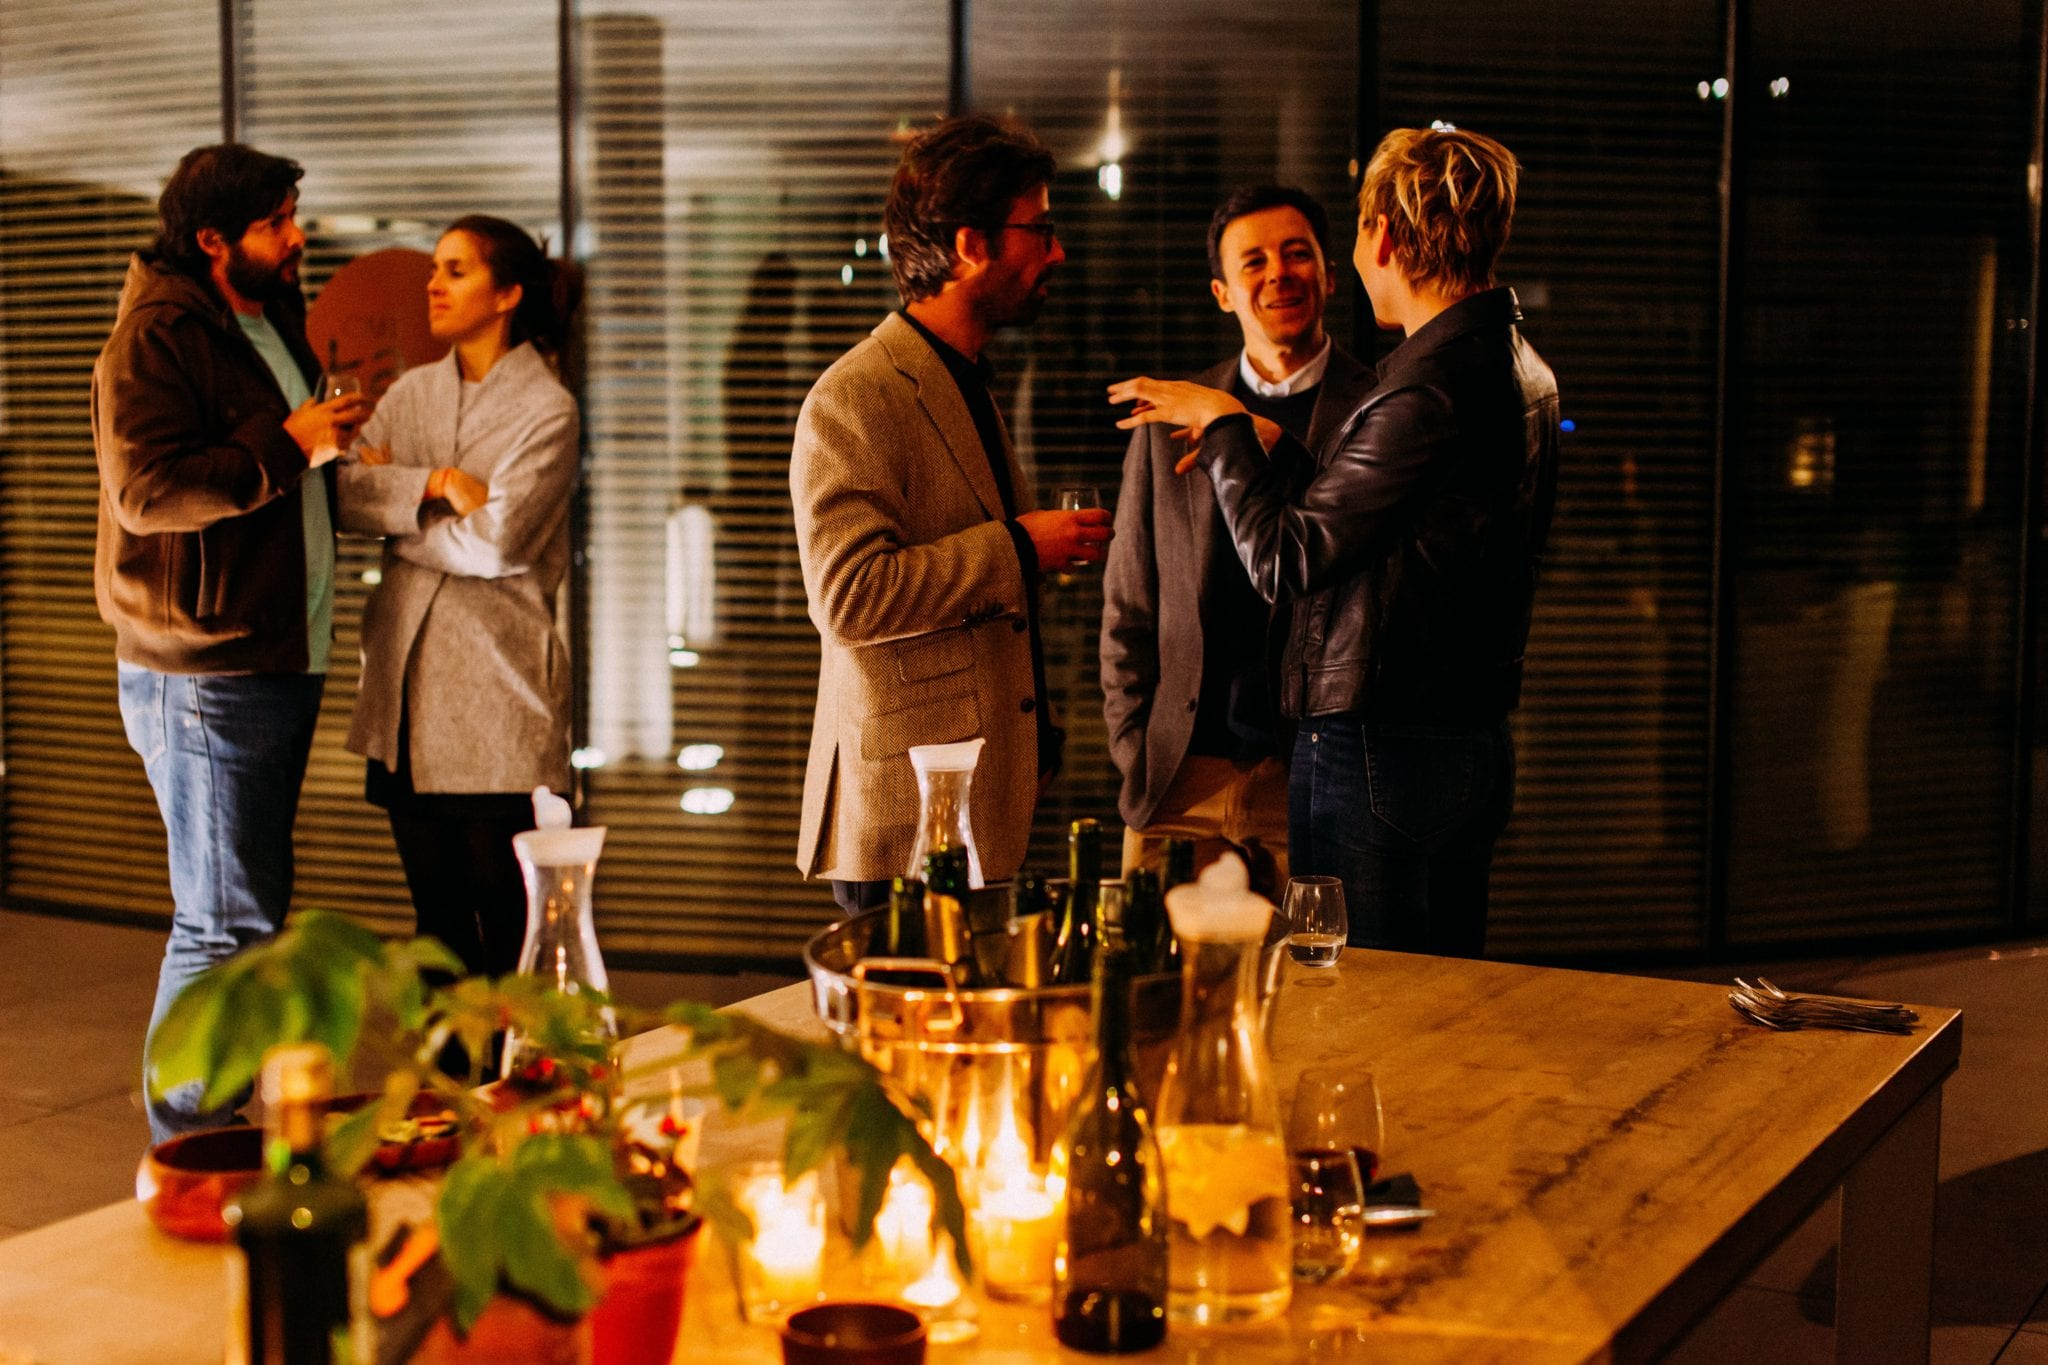 People networking at an event